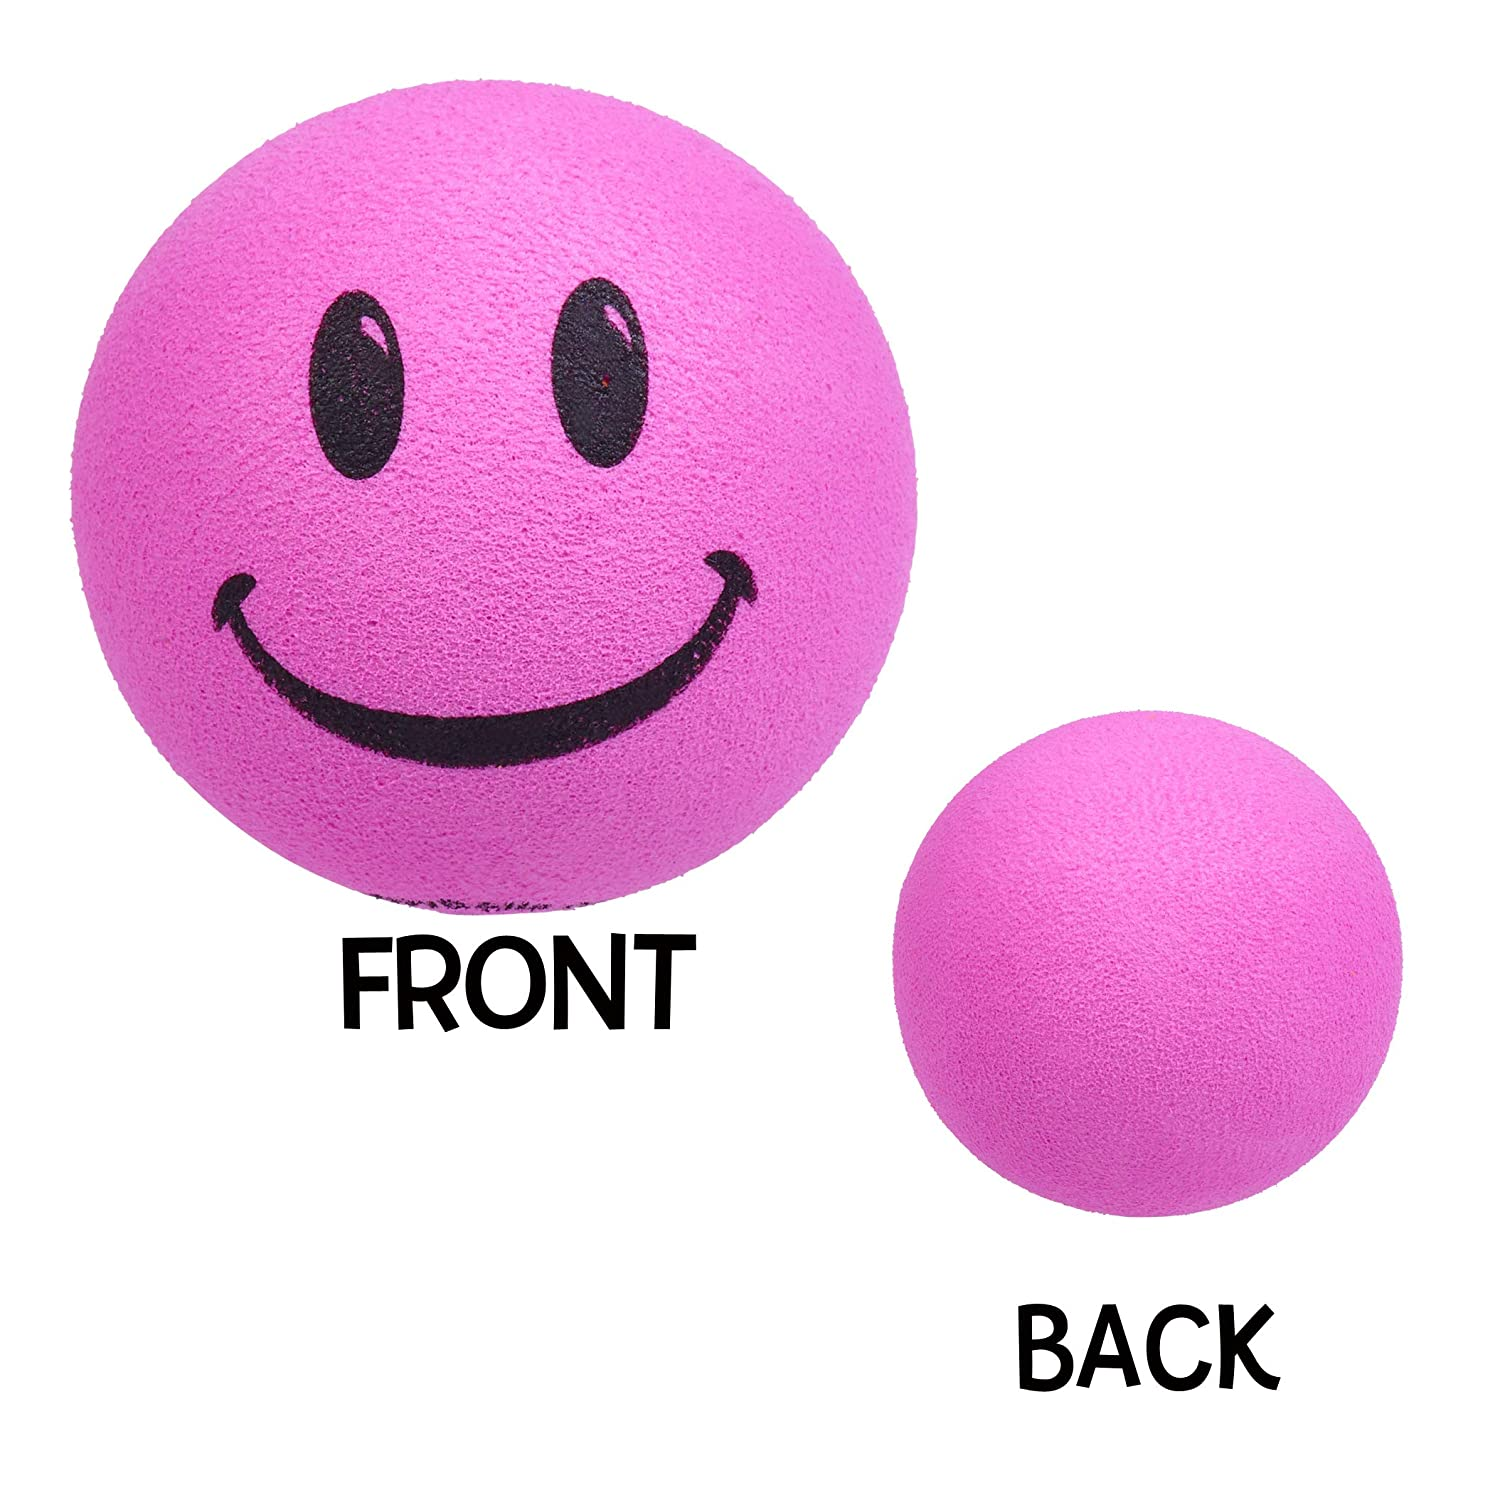 Tenna Tops - Pink Smiley Happy Face Car Antenna Topper - Antenna Ball - Rear View Mirror Dangler - Auto Accessory Tenna Tops® TT207